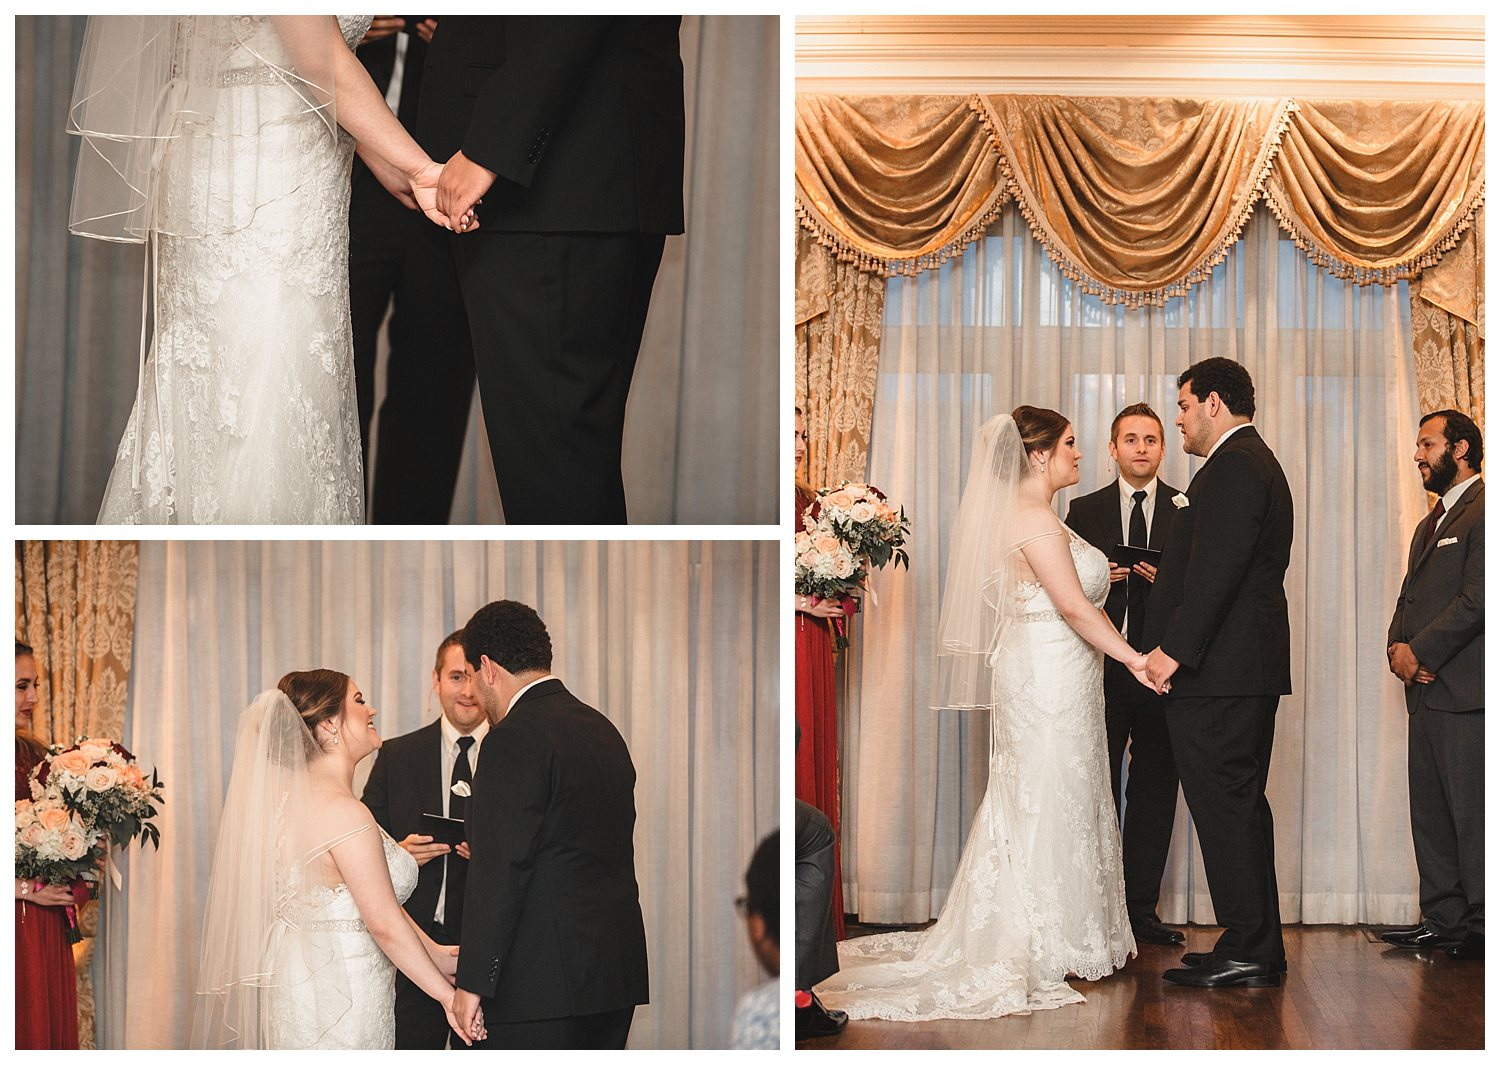 Kelsey_Diane_Photography_Loose_Mansion_Wedding_Photography_Kansas_City_Victor_Lyndsay_0145.jpg